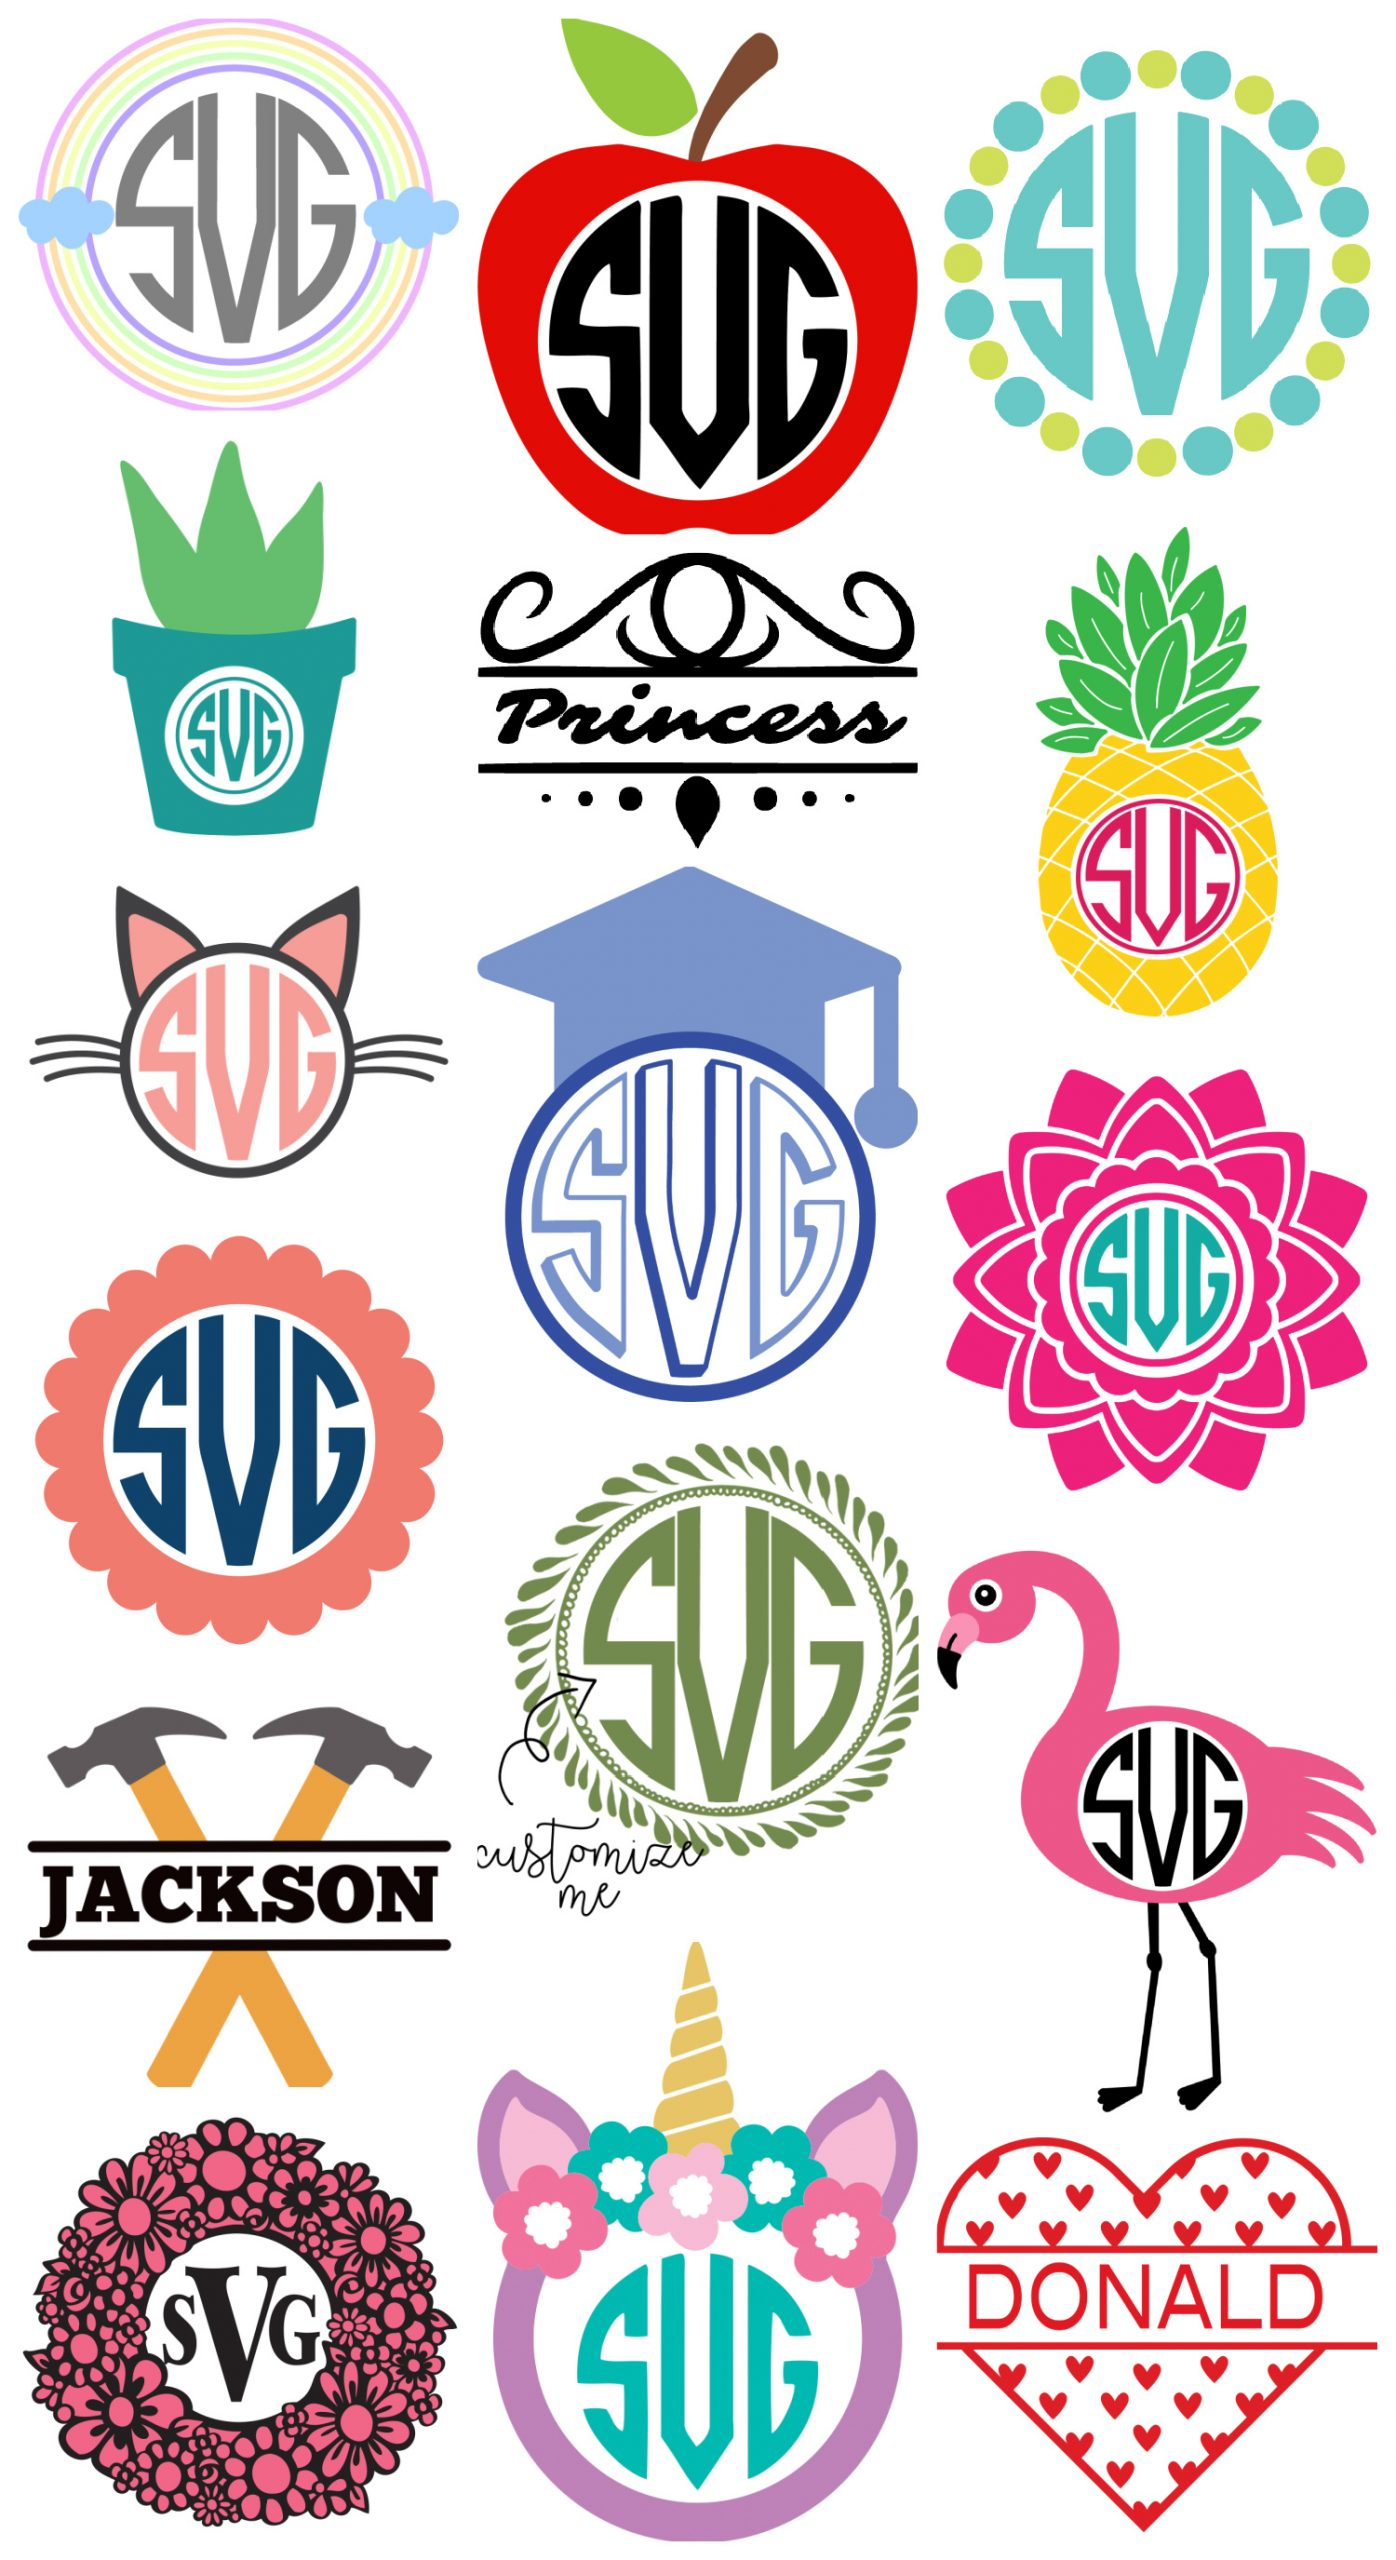 Collage of Cricut Monogram SVG designs